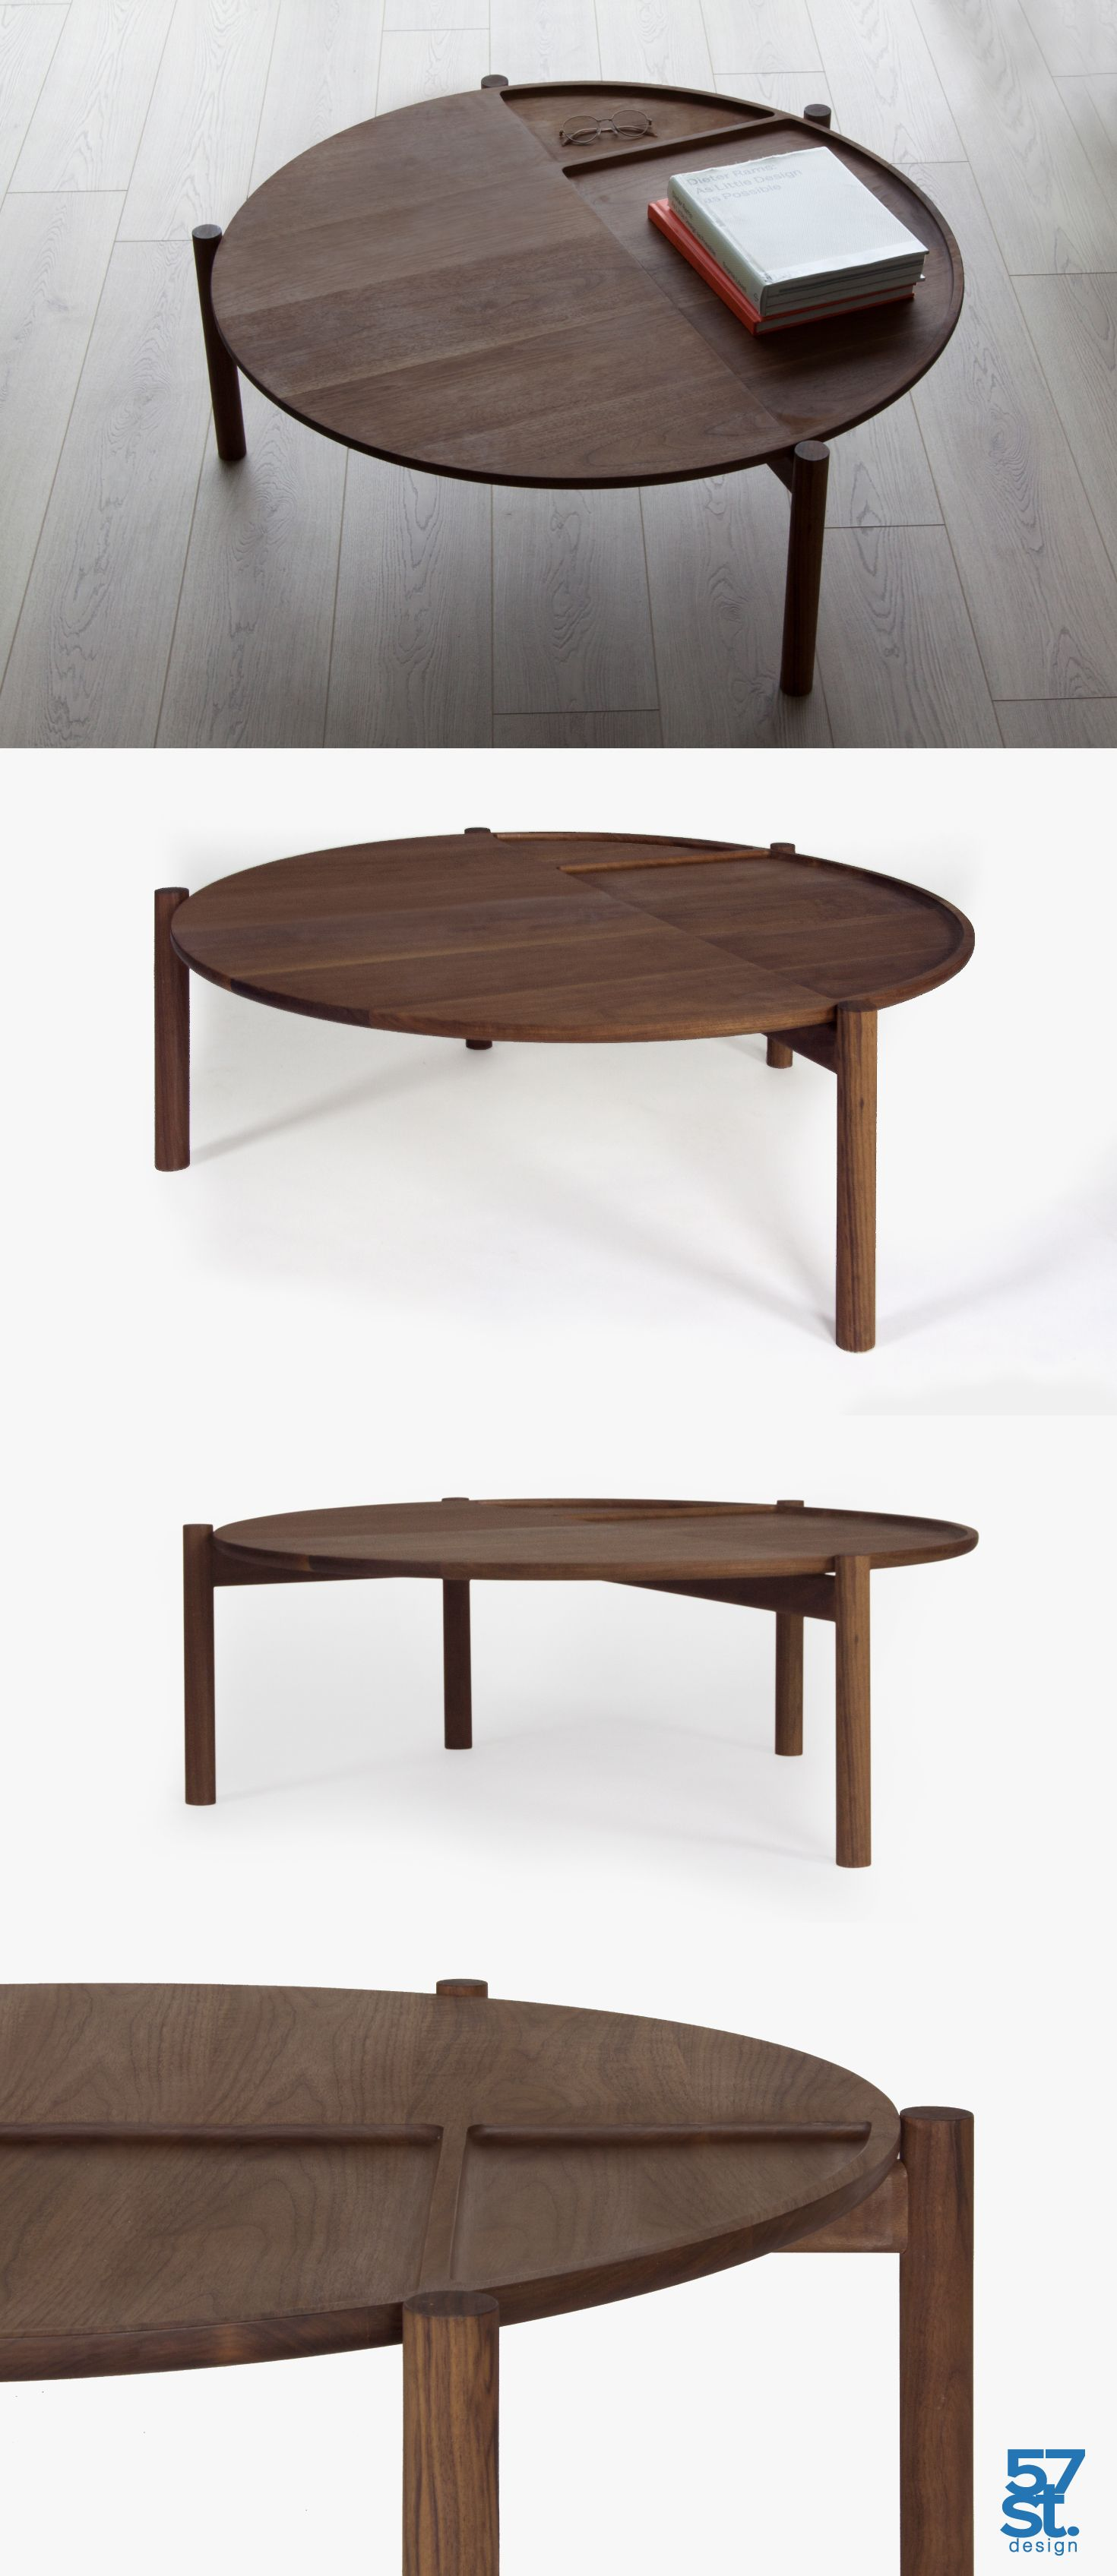 The Ashland Coffee Table Was Designed With Organization In Mind